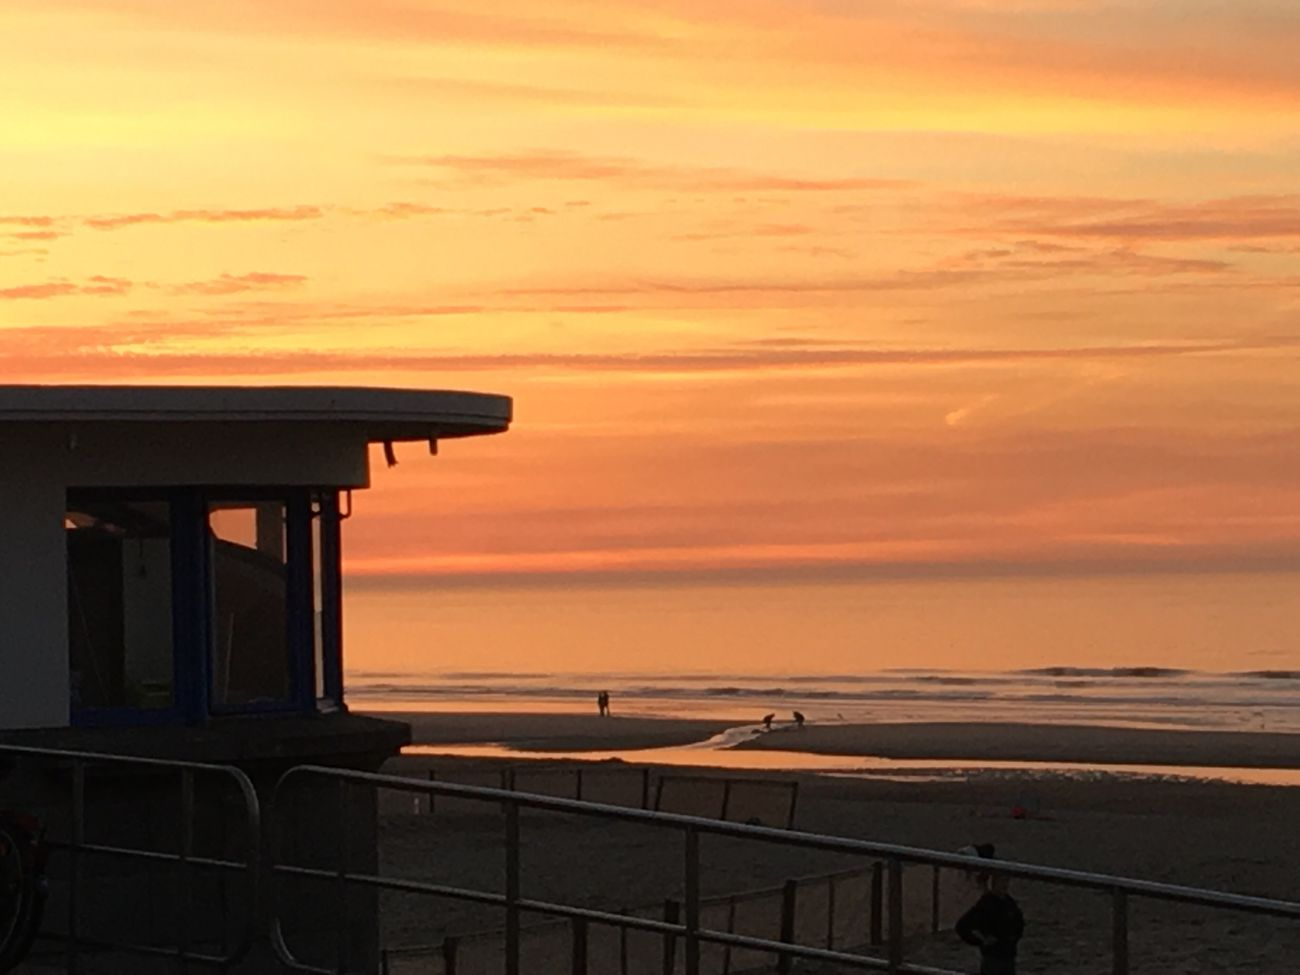 Coucher de soleil à la mer belge Sunset Sea Orange Color Sky Horizon Over Water Water Beauty In Nature Scenics Nature Tranquil Scene Tranquility Outdoors No People Beach Cloud - Sky Architecture Lifeguard Hut Day First Eyeem Photo